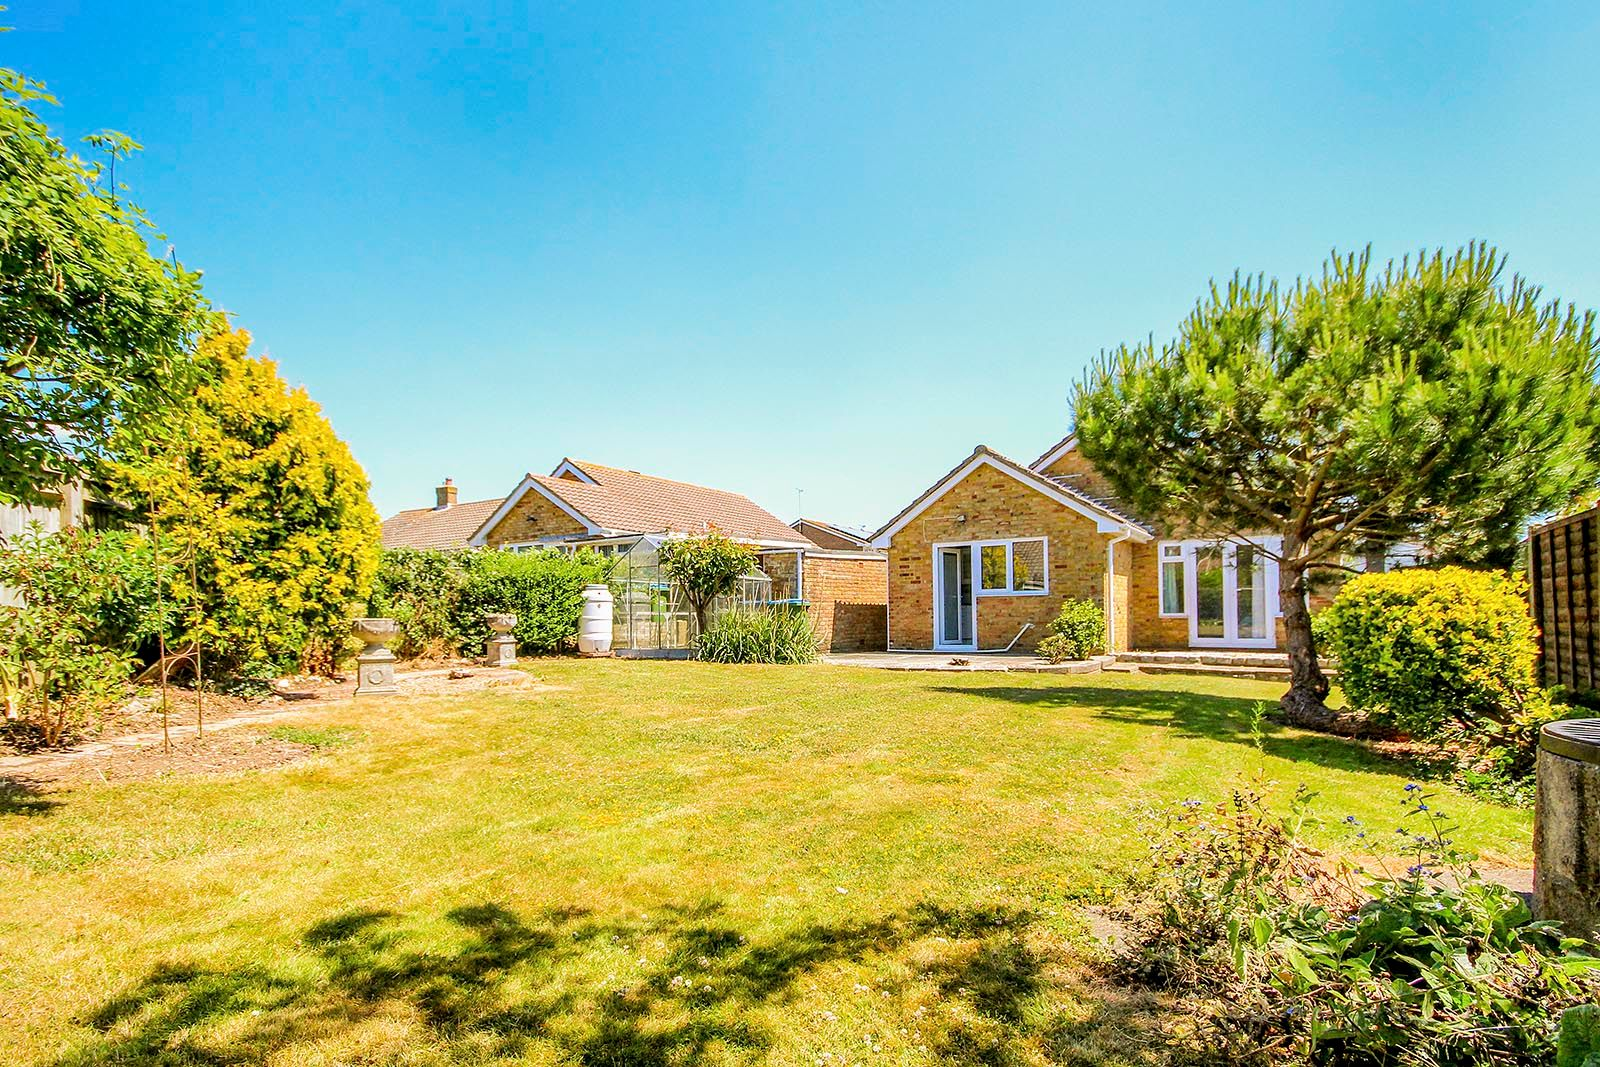 3 bed bungalow for sale in Greenacres Ring COMP SEPT 19 2